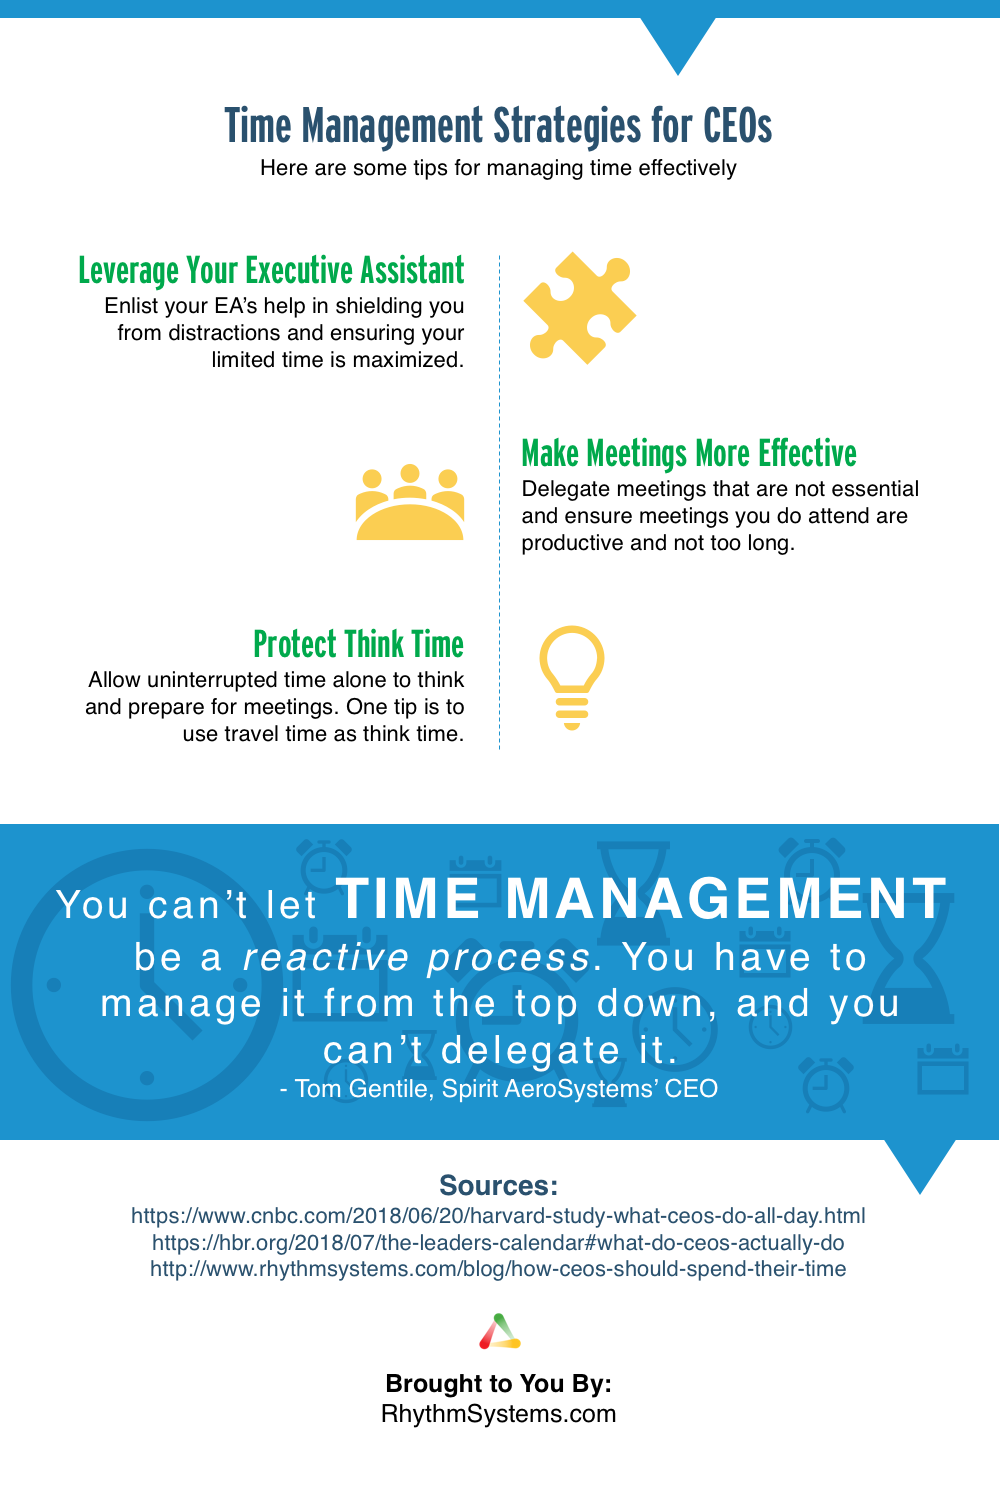 How to Manage Your Time Effectively as a CEO